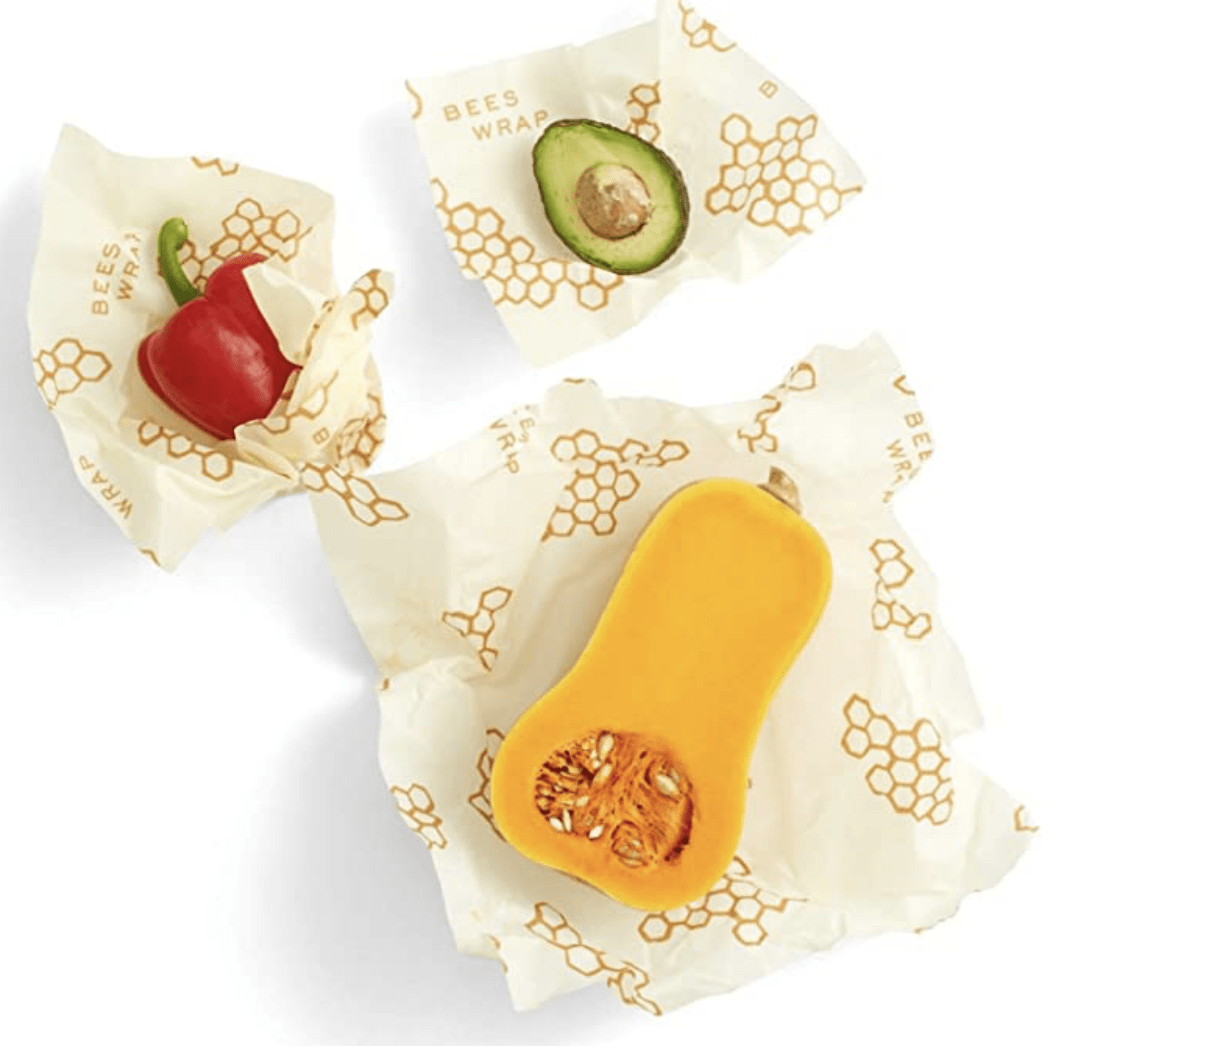 This all natural beeswax food storage wrap that will help you cut back on waste.